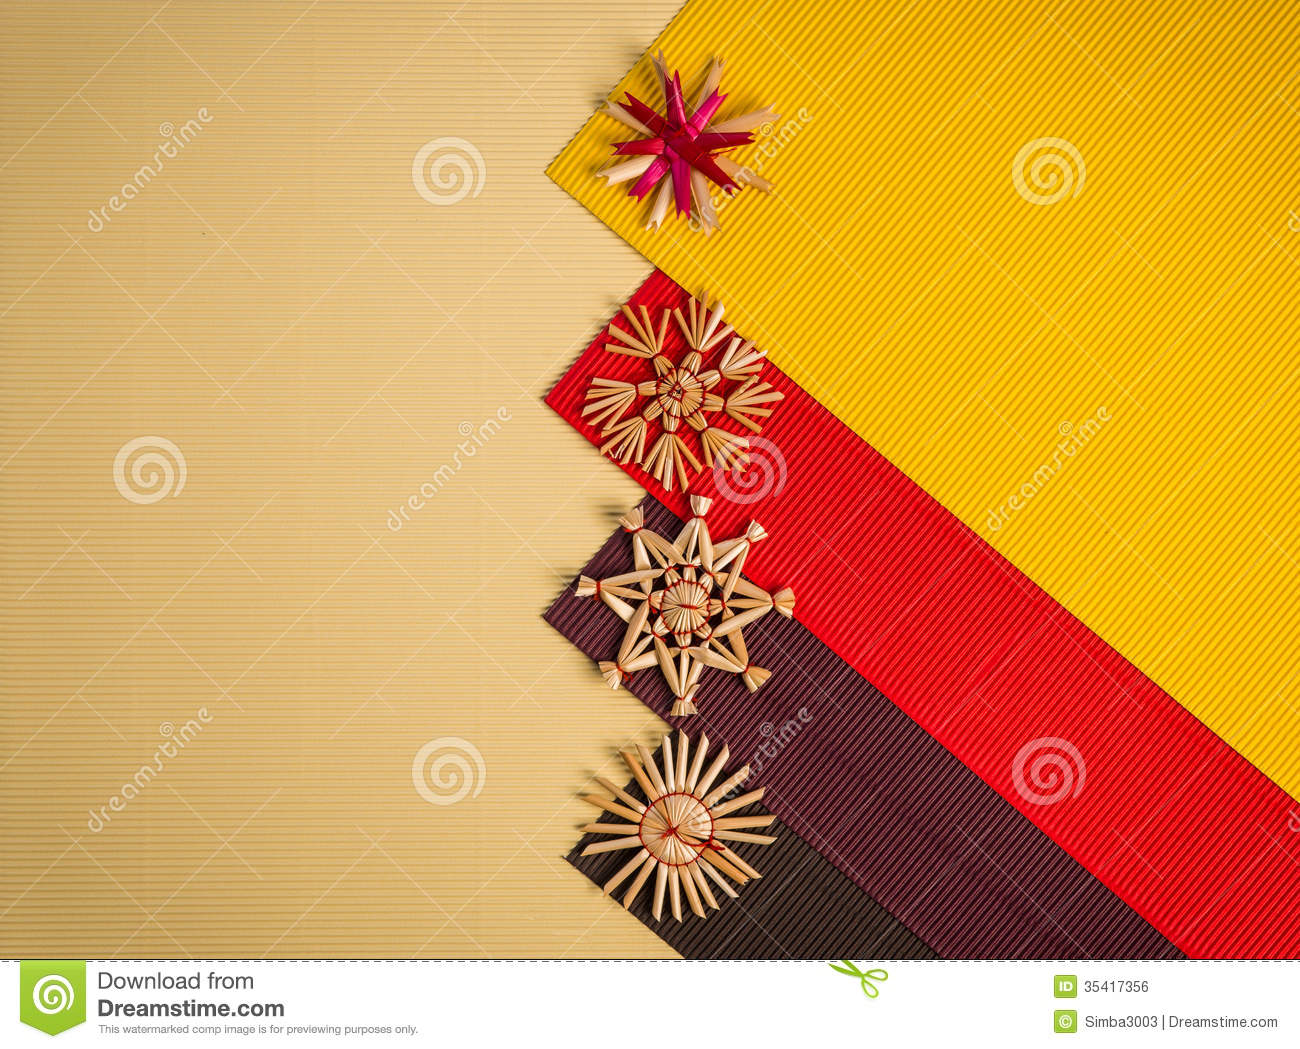 background for christmas greeting card